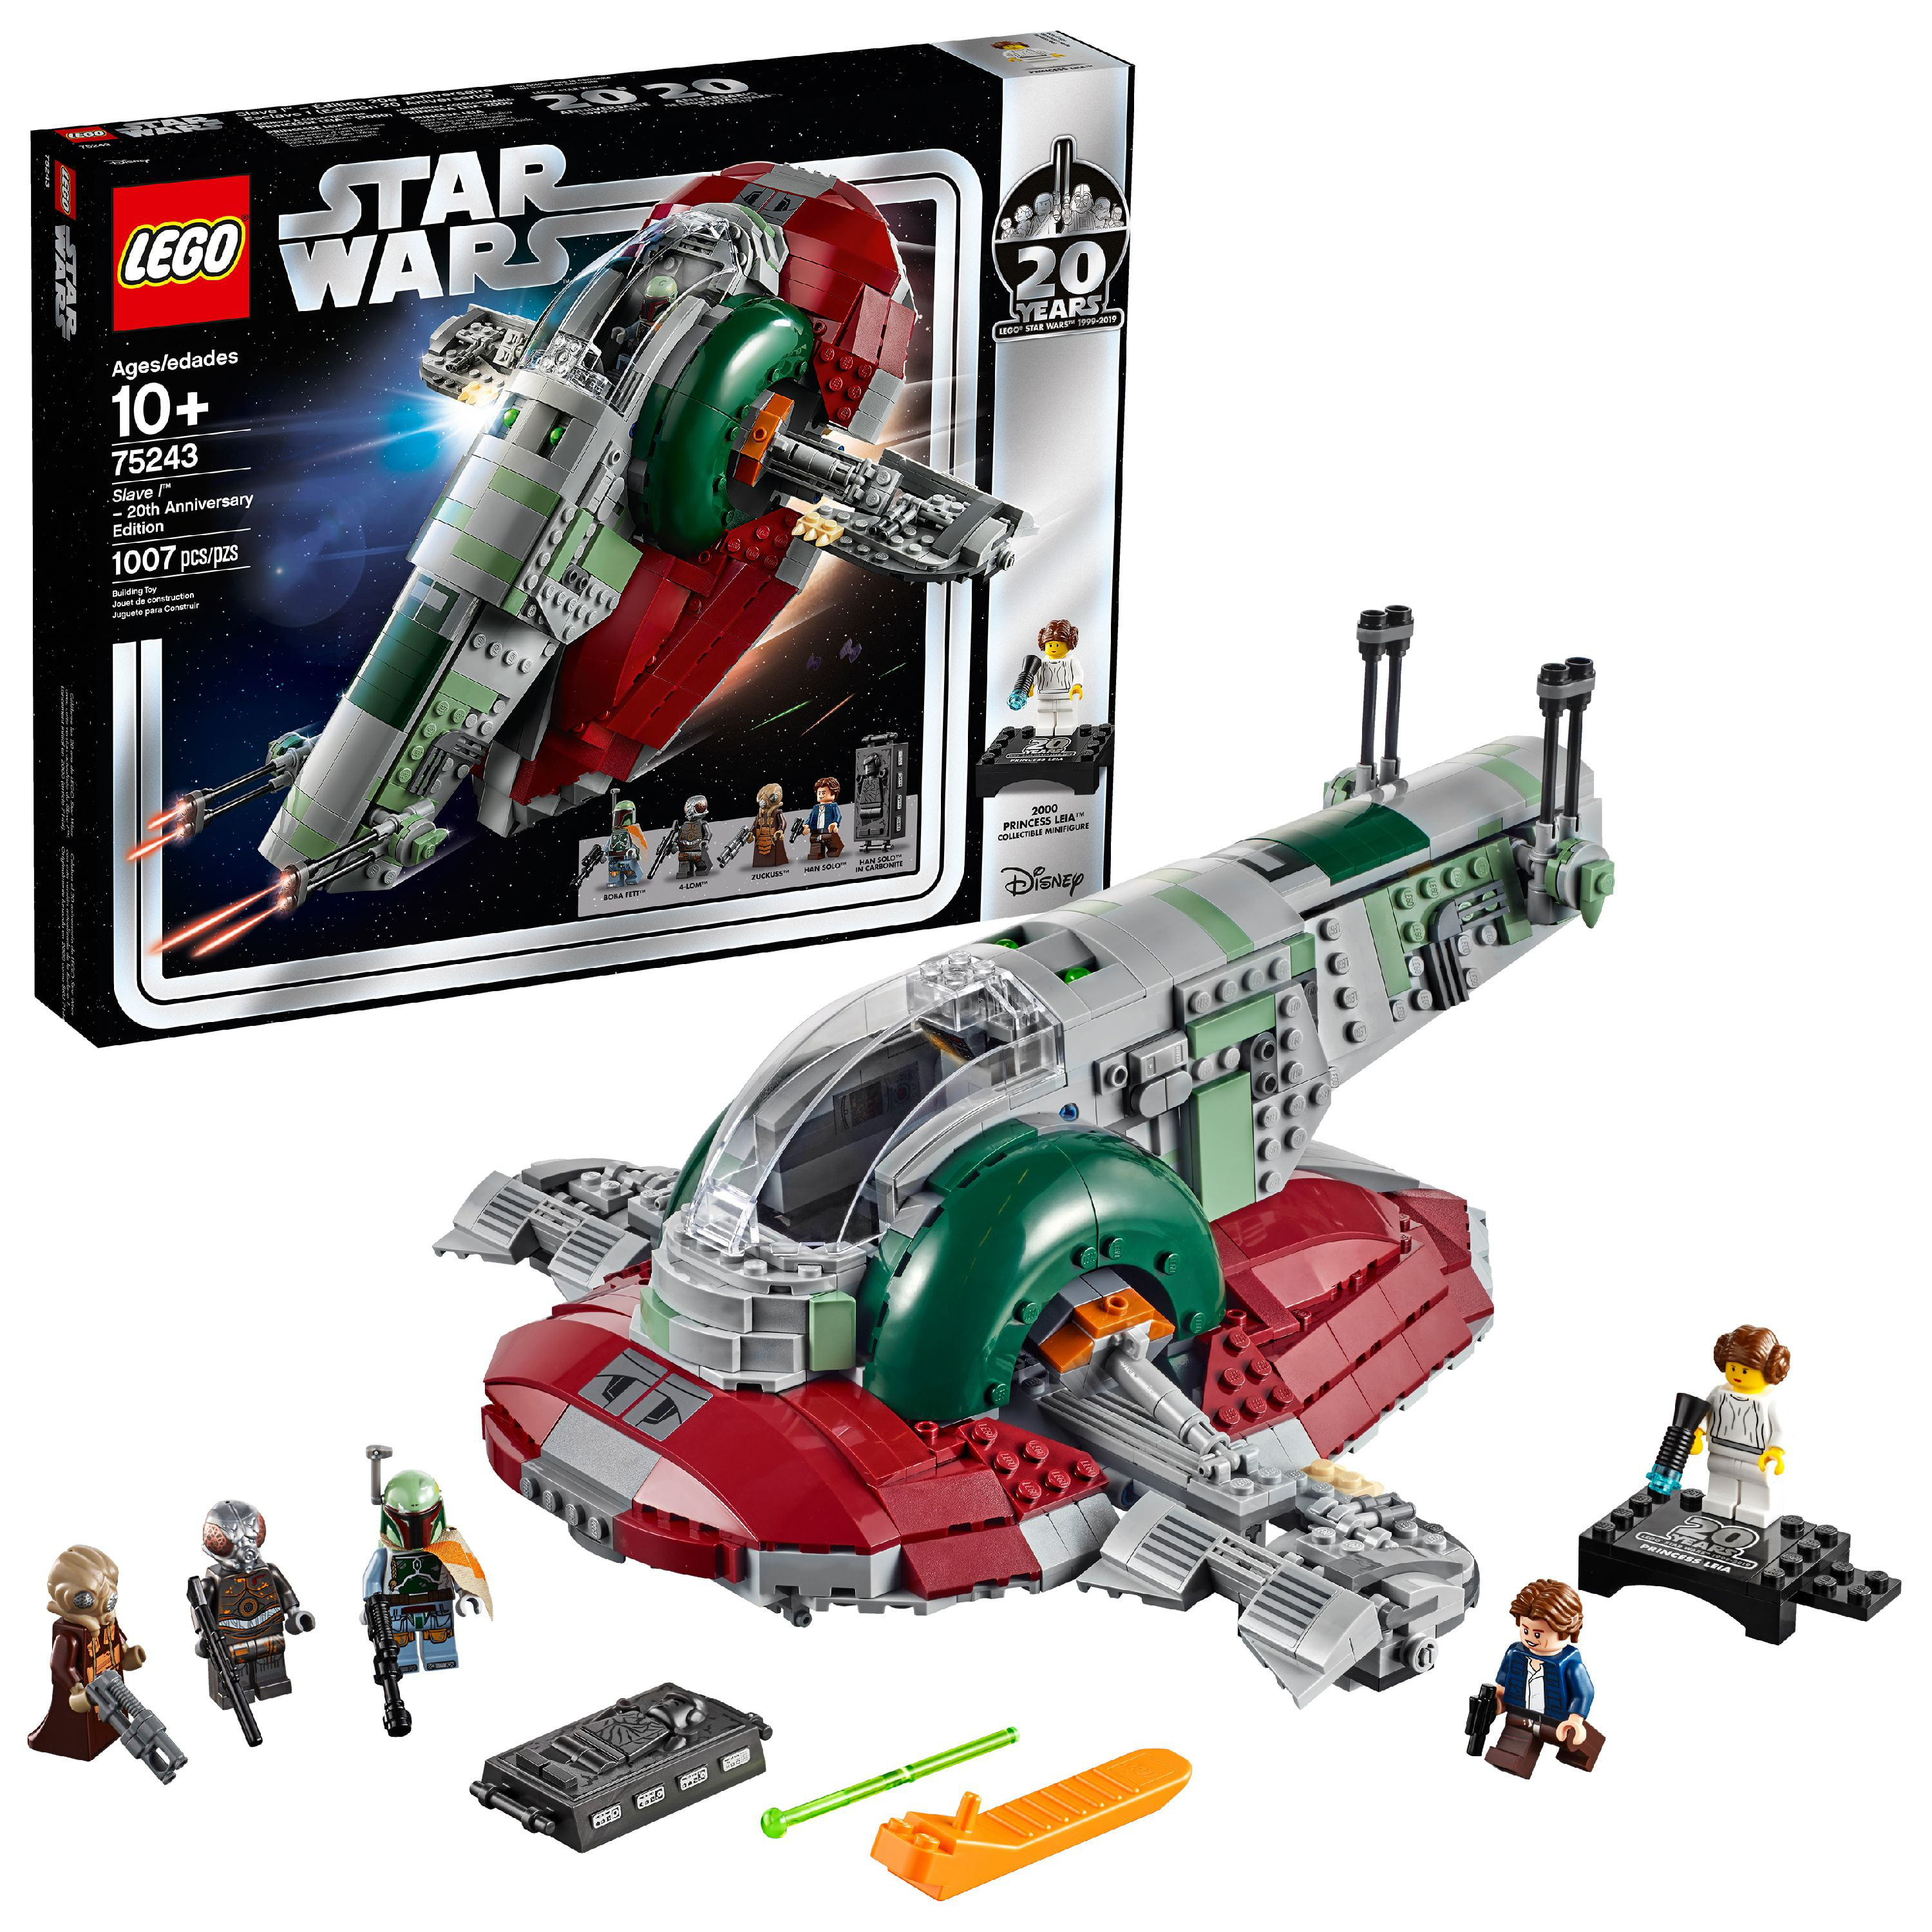 LEGO Star Wars Slave l – 20th Anniversary Collector Edition Collectible Model Building Kit 75243